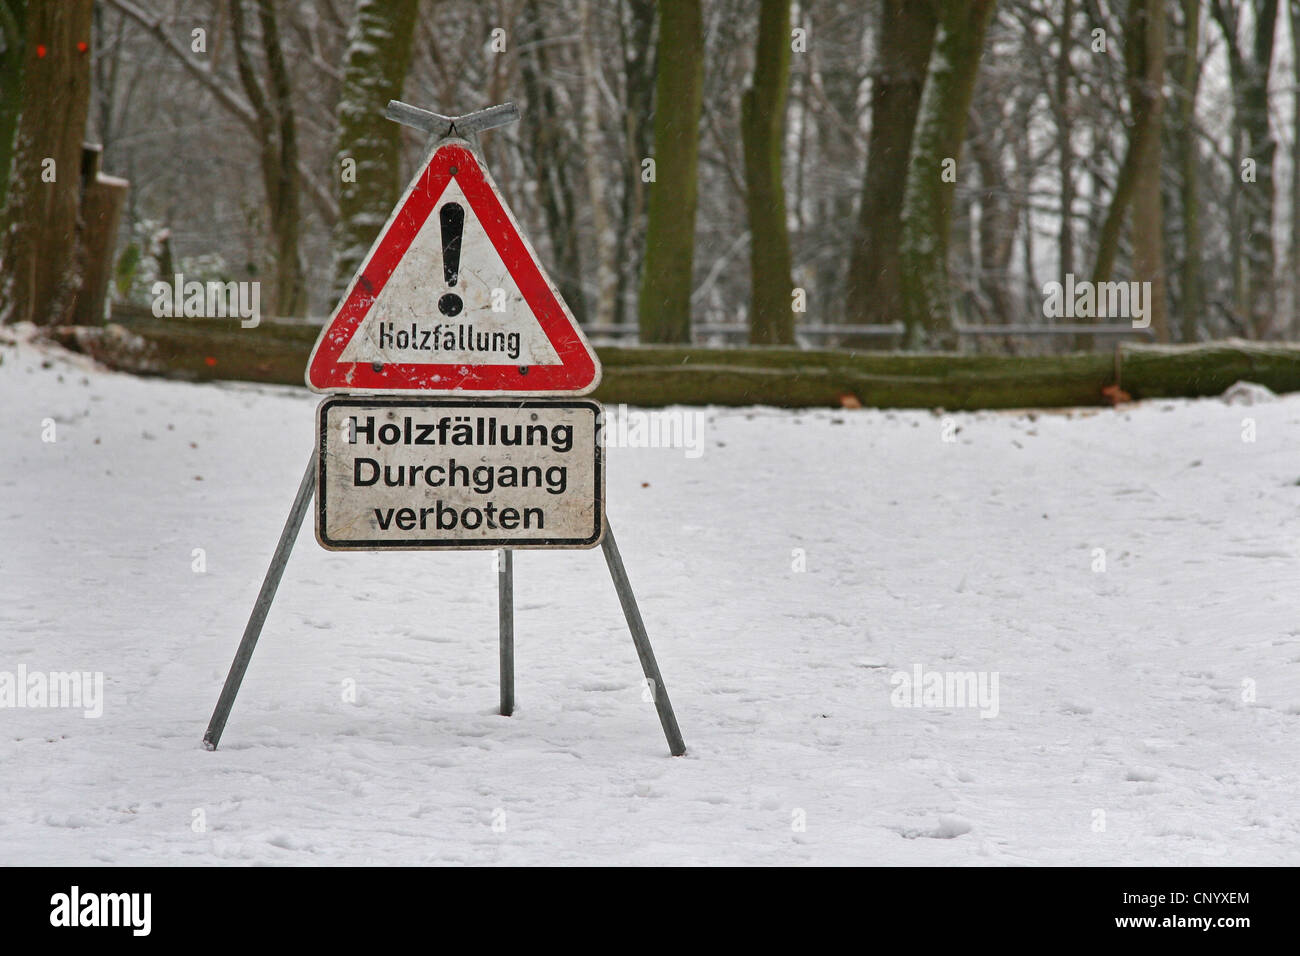 warning sign at forest works in winter, Germany, North Rhine-Westphalia Stock Photo